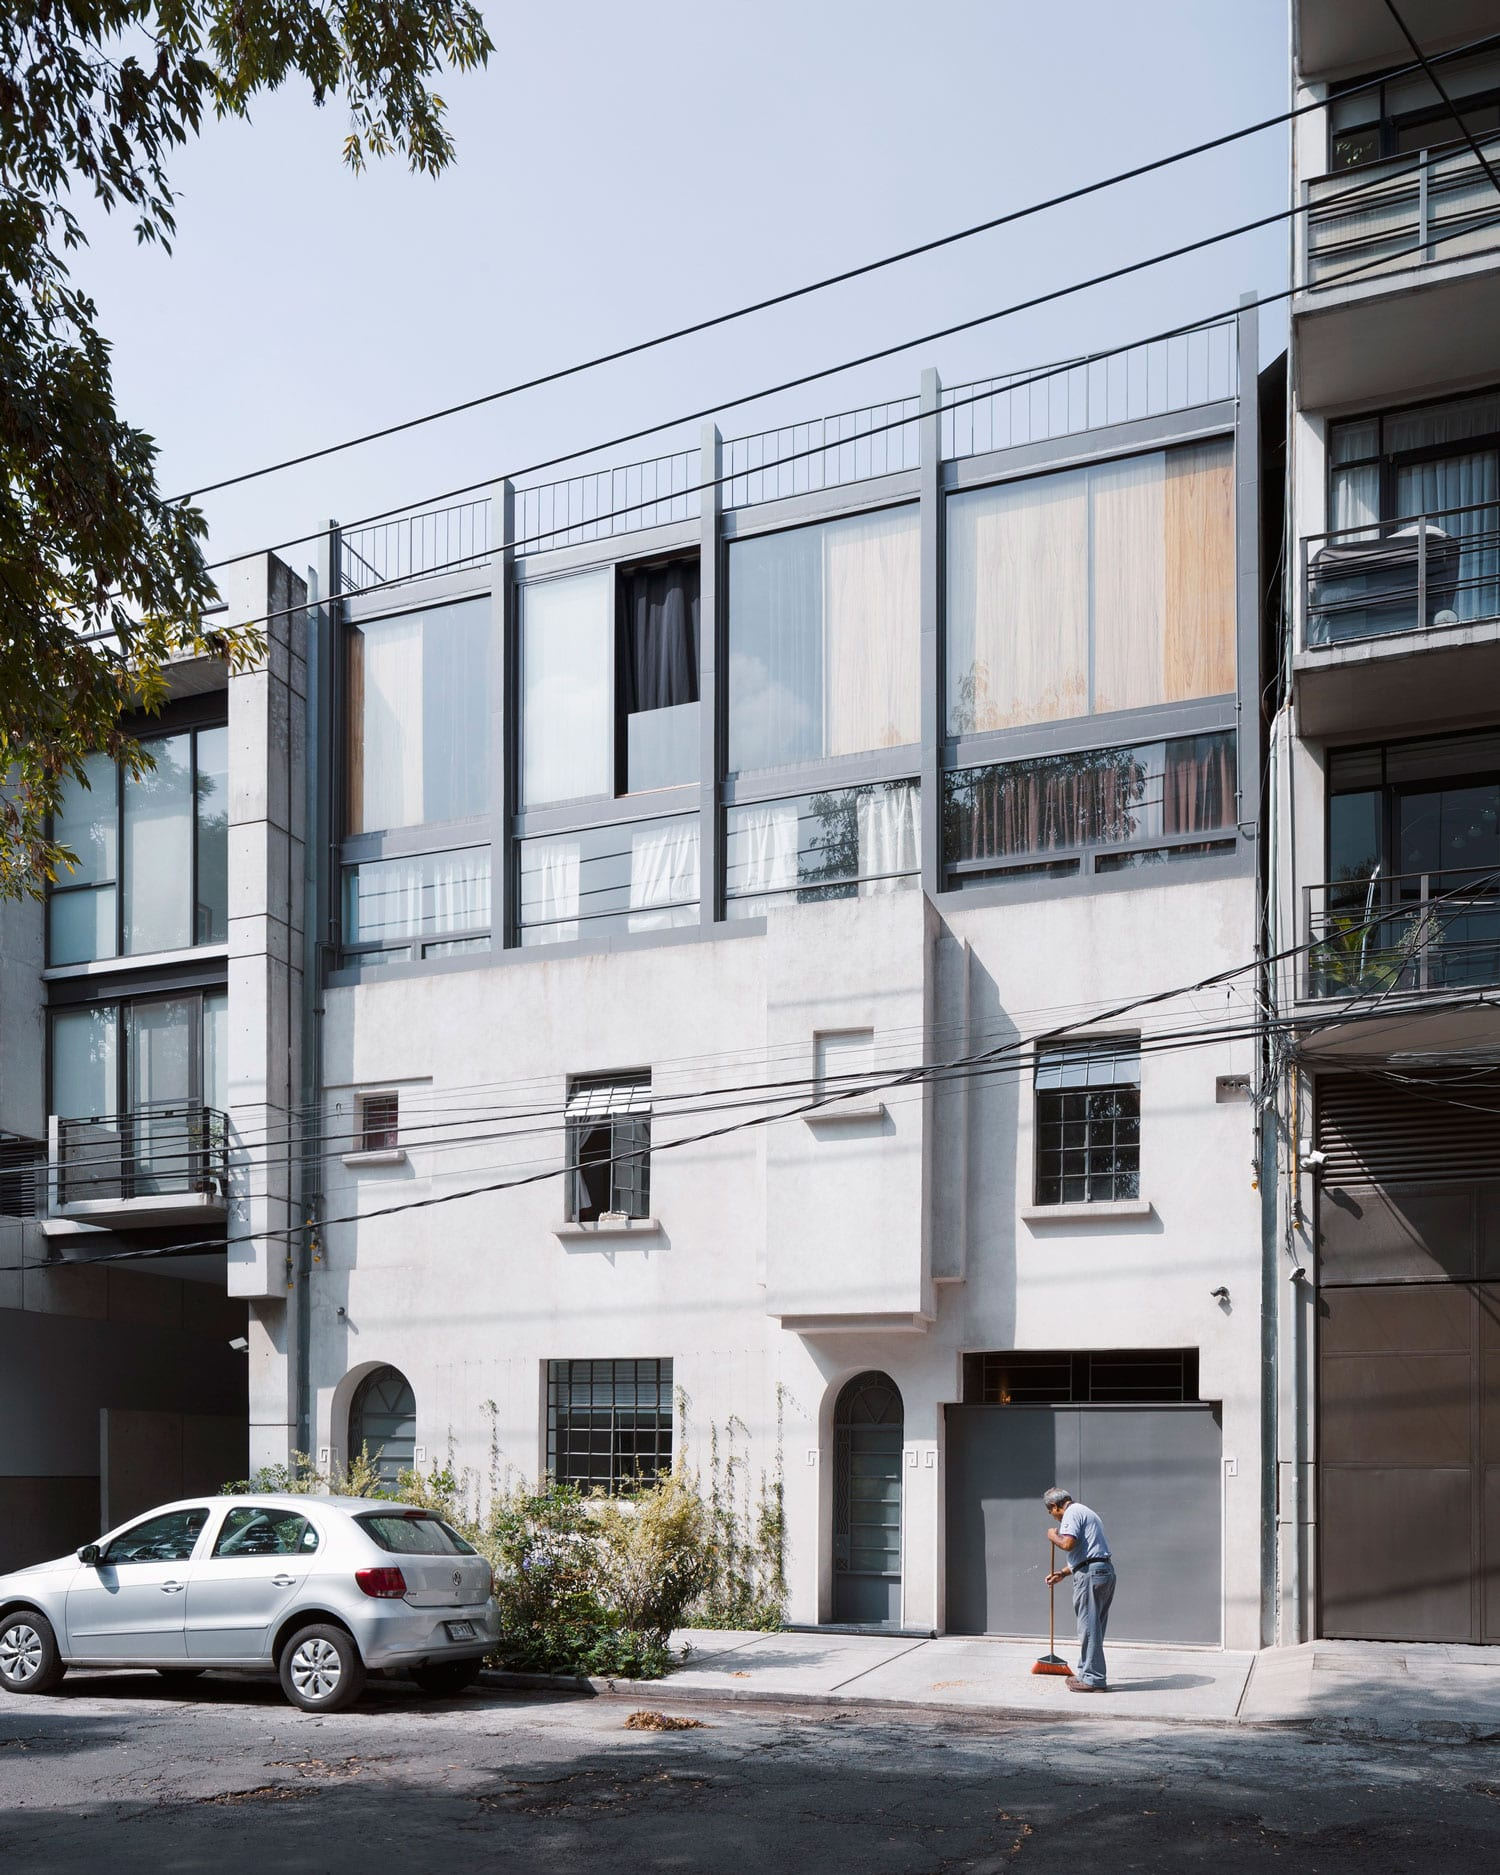 AS Town House Building in Mexico City by AMBROSI ETCHEGARAY.